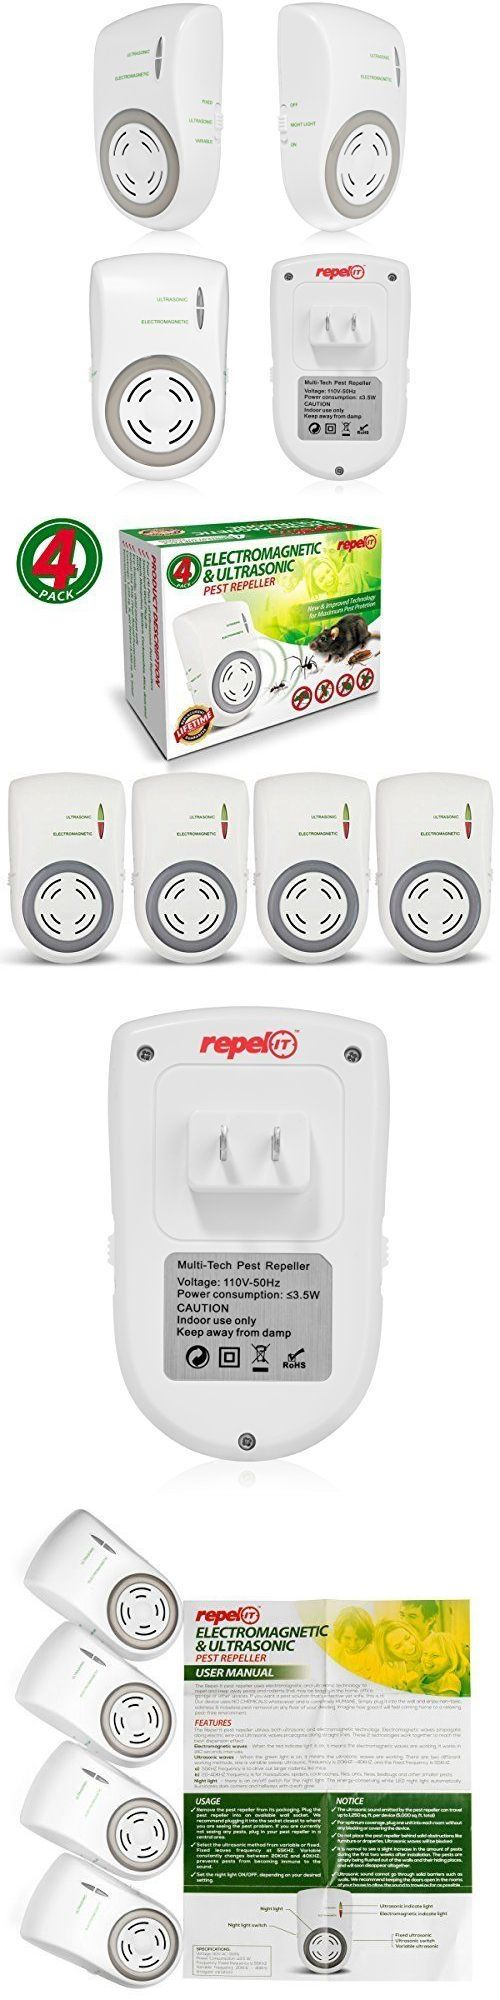 Ultrasonic Pest Repellers 181035: Ultrasonic Pest Repeller Pest Control Mice Rats Roaches 4 Pack Plug In White -> BUY IT NOW ONLY: $47.53 on eBay!